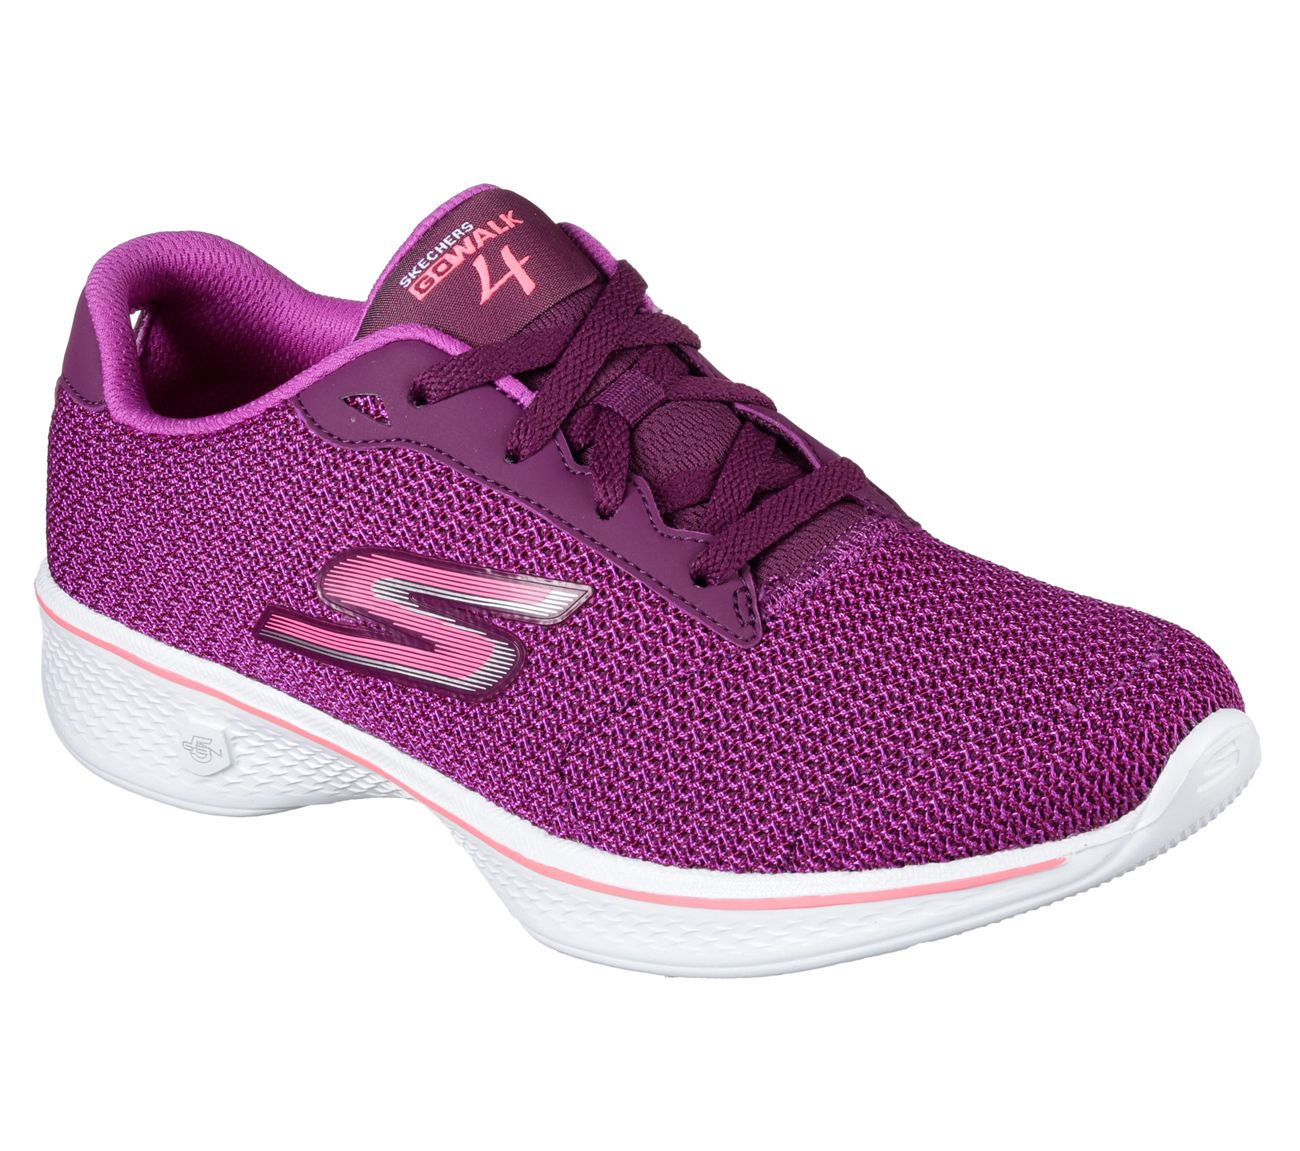 Metáfora Asesino Condición  Every day is a choice. Choose greatness with the Skechers GOwalk  4™ - Glorify. Features innovative 5GEN&… | Skechers, Walking shoes  women, Skechers women